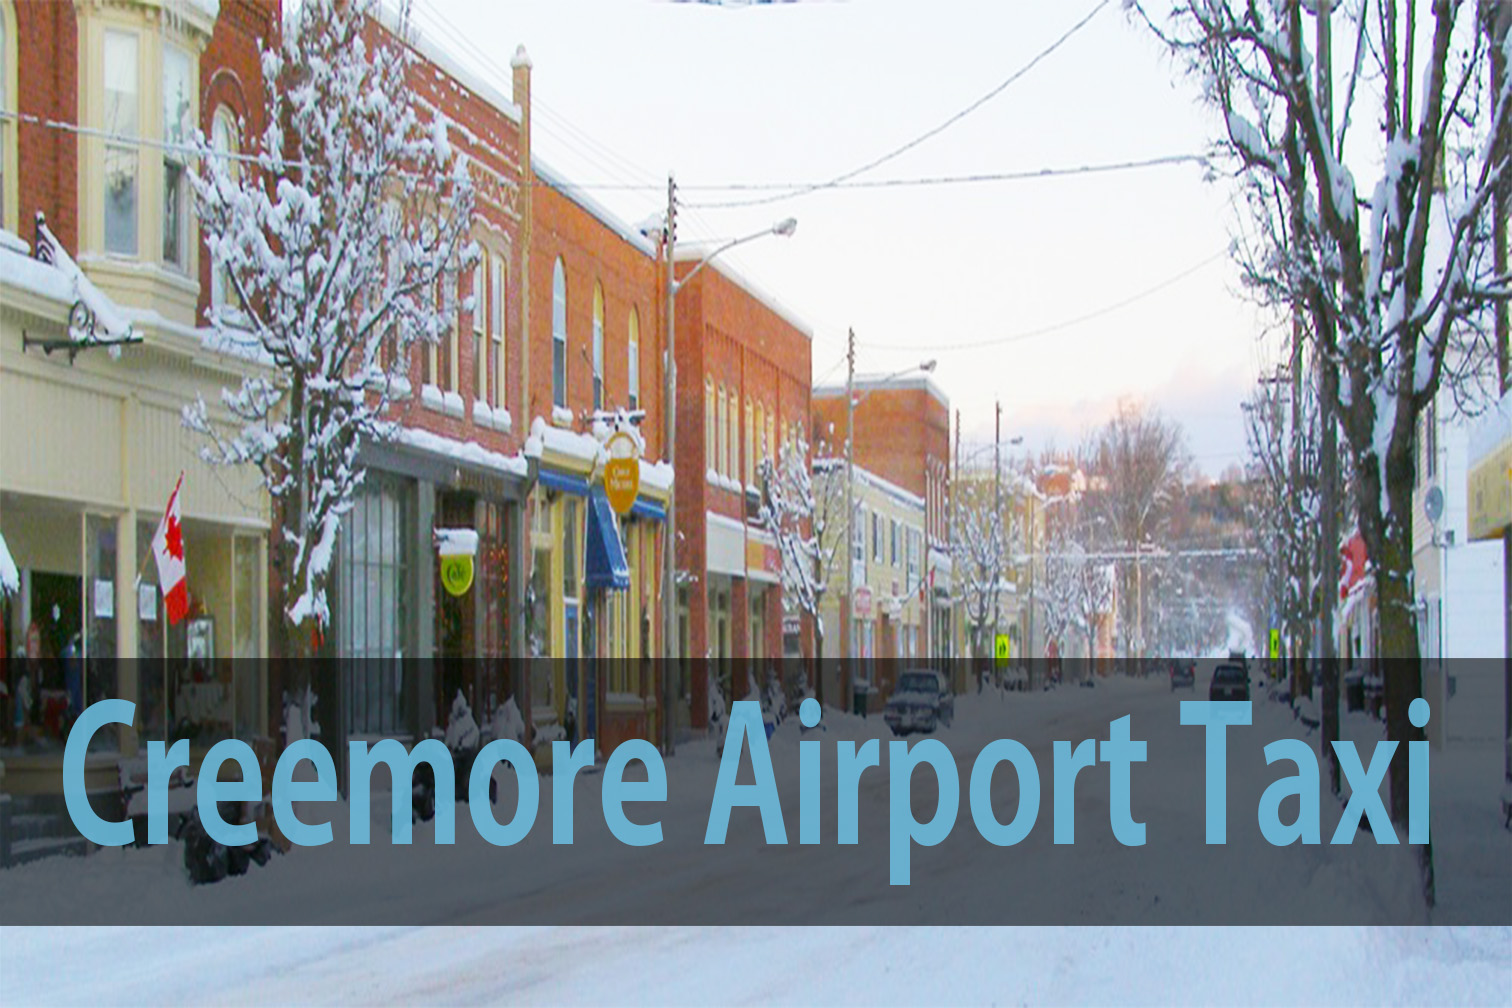 Creemore airport taxi